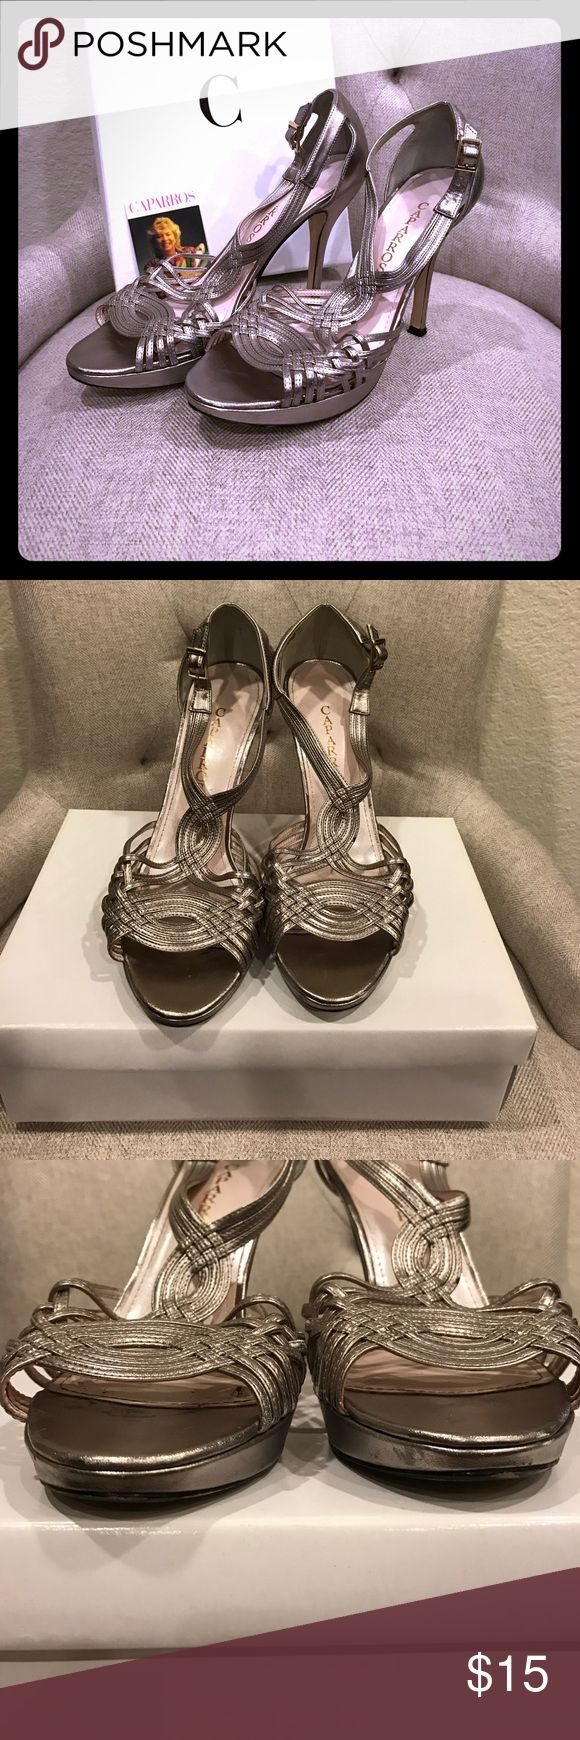 Caparros Wyndham Metallic Strappy Heel Pre-loved/used. Visible signs of wear shown. Some scuffs on soles. Mushroom Metallic with Gold Fastener. Size 8.5 Caparros Shoes Heels